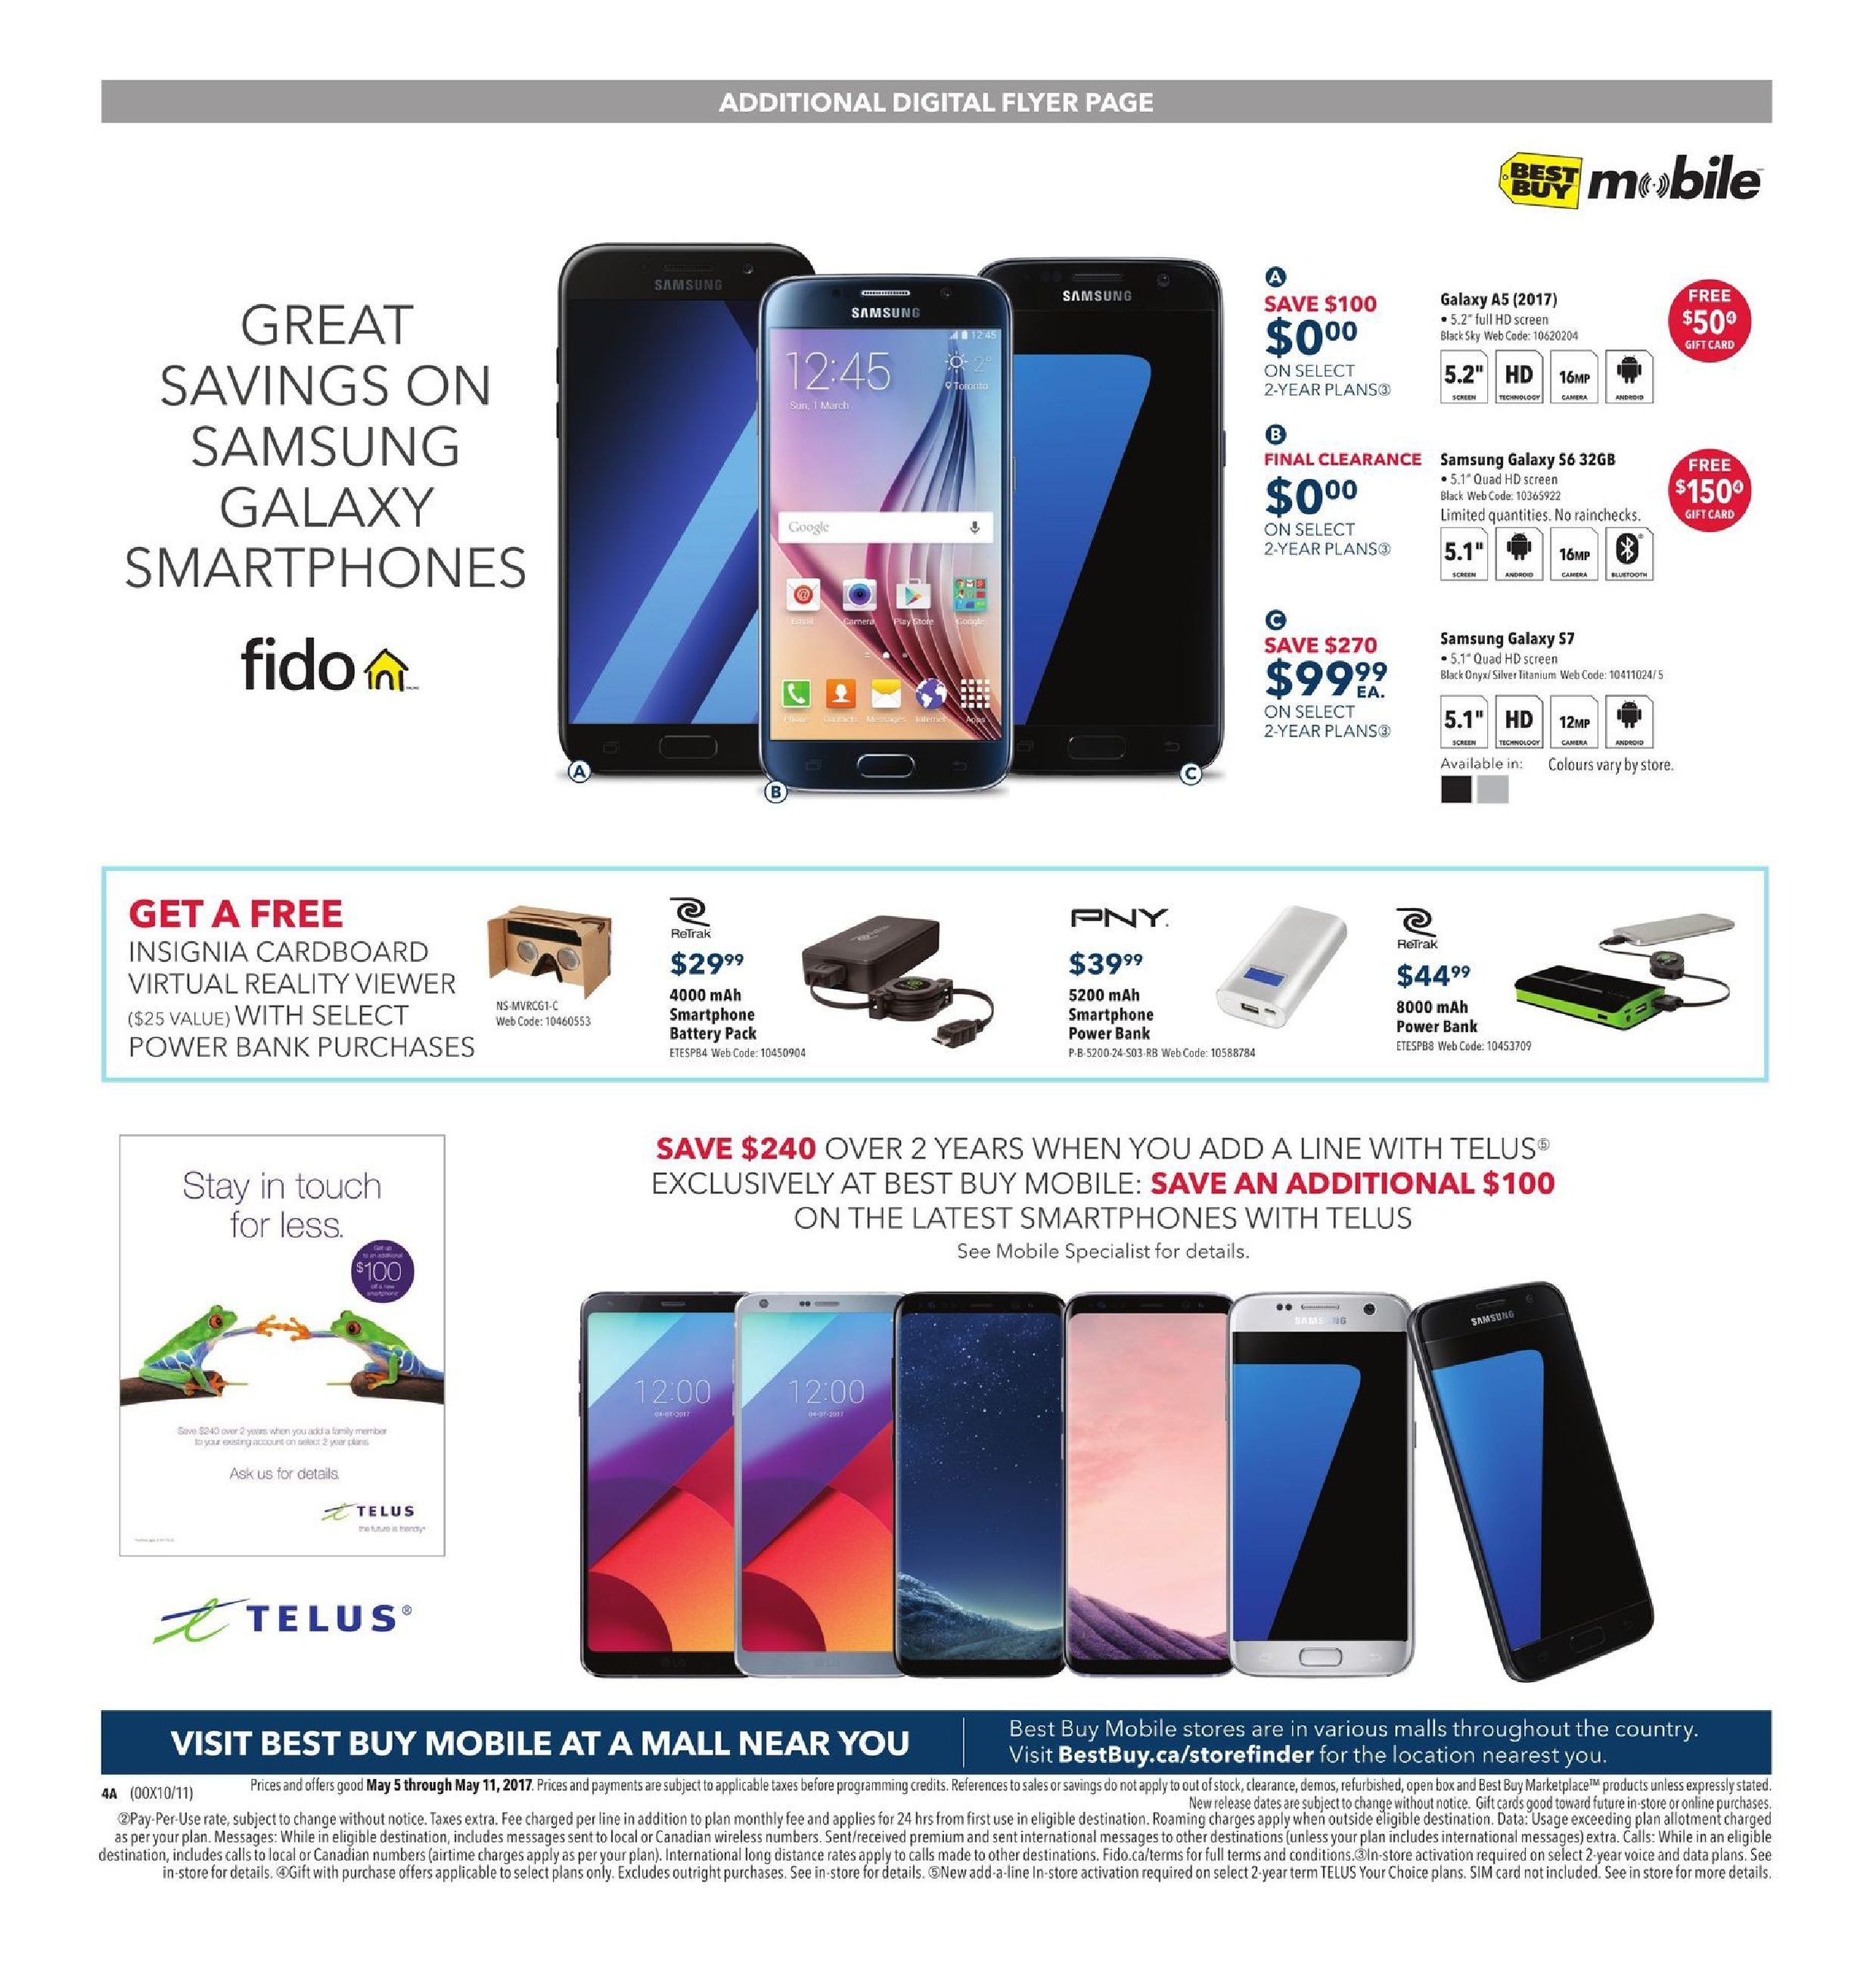 Best buy weekly flyer weekly wow mom with hot tech gifts may 5 best buy weekly flyer weekly wow mom with hot tech gifts may 5 11 redflagdeals fandeluxe Gallery